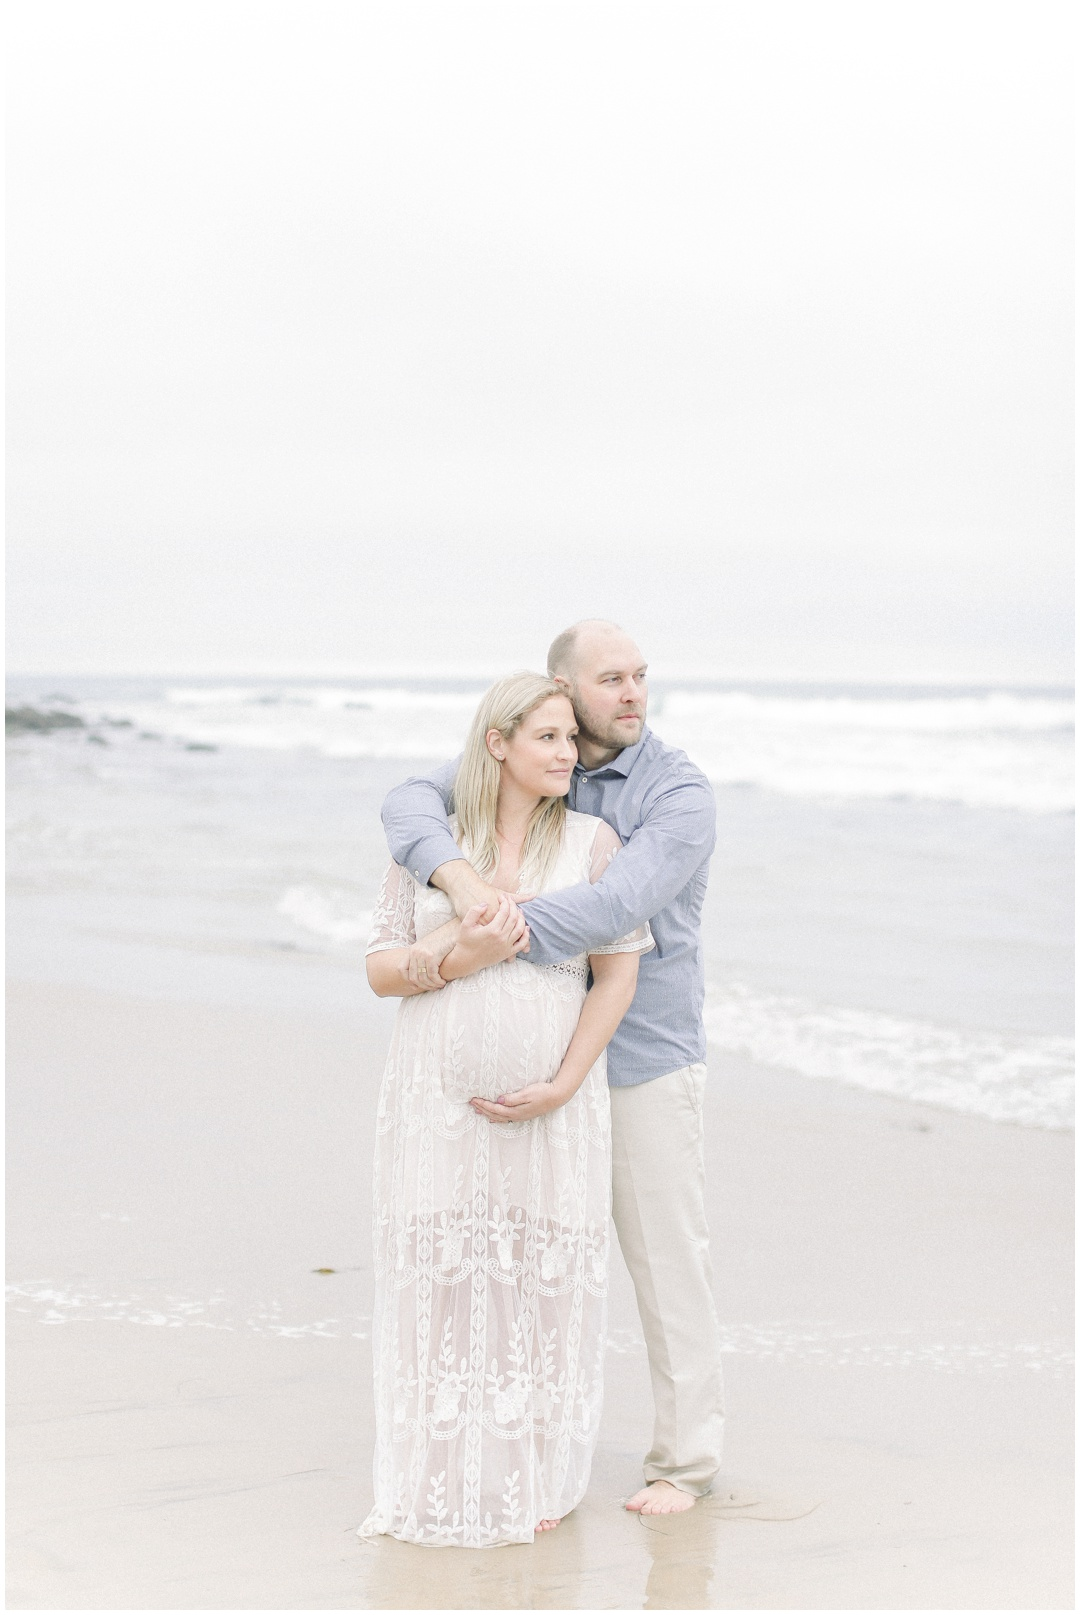 Newport_Beach_Newborn_Light_Airy_Natural_Photographer_Newport_Beach_Photographer_Orange_County_Family_Photographer_Cori_Kleckner_Photography_Newport_Beach_Photographer_Marisa_Podesto_Todd_Podesto__3963.jpg